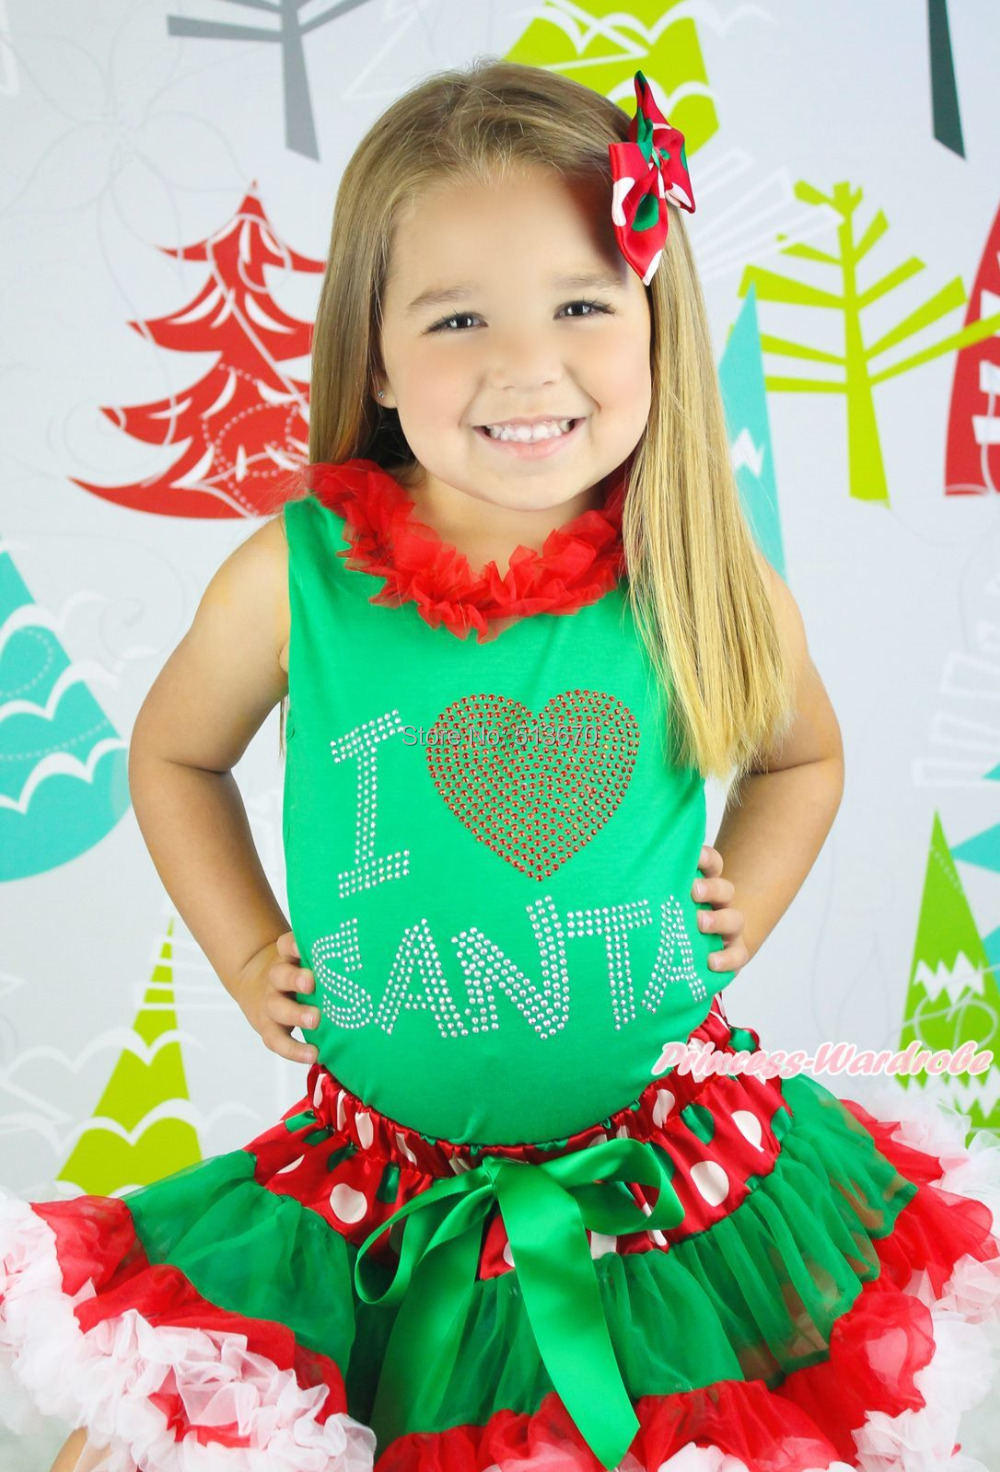 XMAS Rhinestone I LOVE SANTA Top Baby Girl Red Green White Dot Skirt Set 1-8Year MAPSA0081 st patrick s day green clover white top satin trimmed baby girl skirt set 1 8y mapsa0394